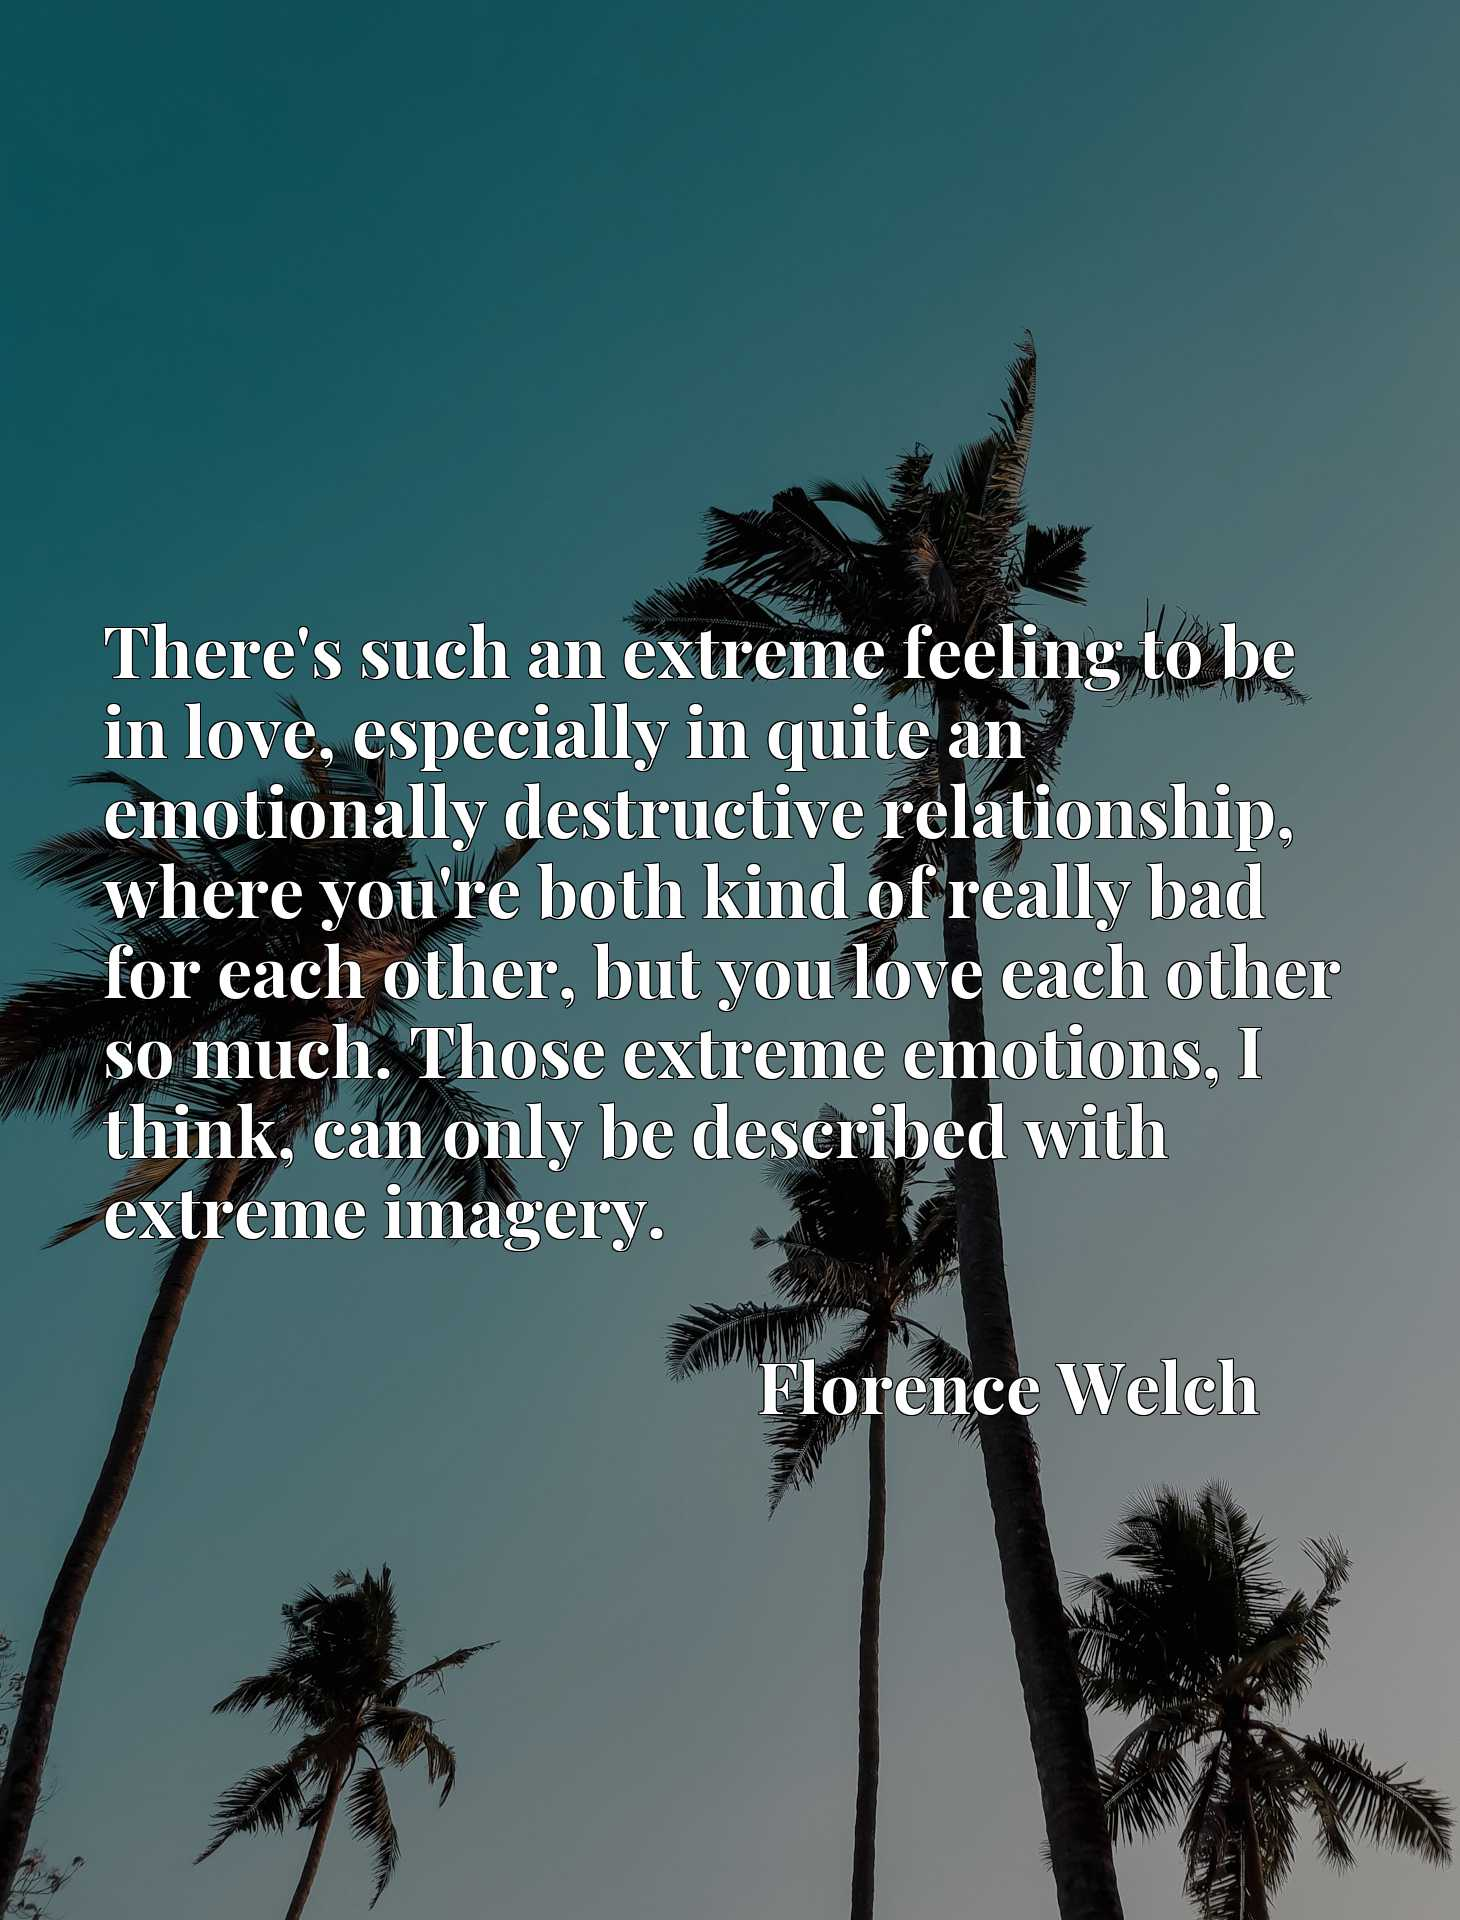 There's such an extreme feeling to be in love, especially in quite an emotionally destructive relationship, where you're both kind of really bad for each other, but you love each other so much. Those extreme emotions, I think, can only be described with extreme imagery.